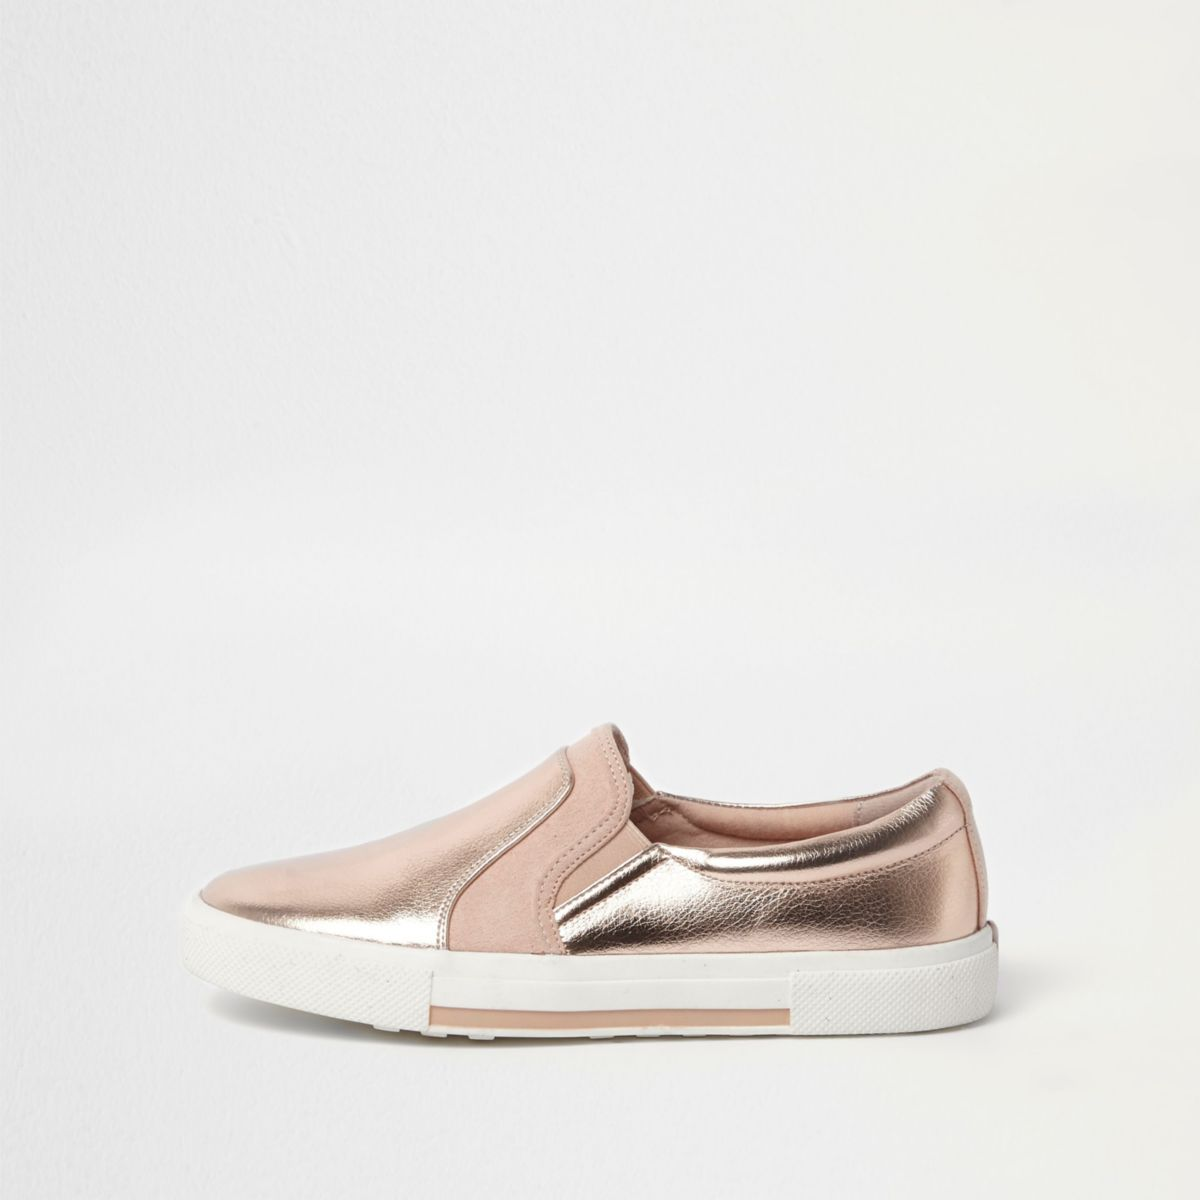 Rose gold metallic slip on plimsolls